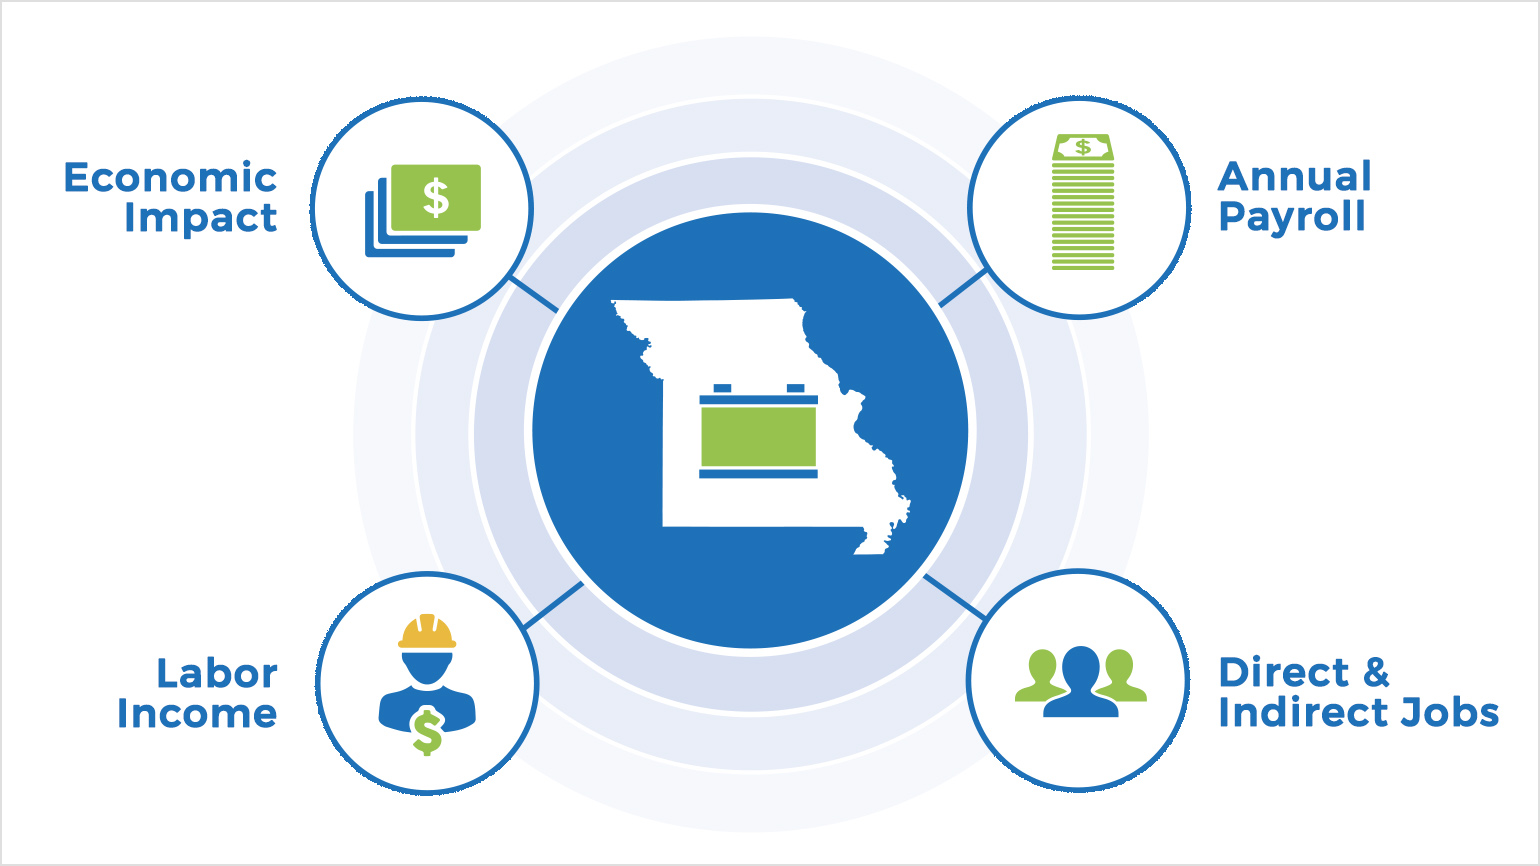 Missouri's lead battery industry supports the statewide economy, annual payroll, labor income, and direct and indirect jobs.